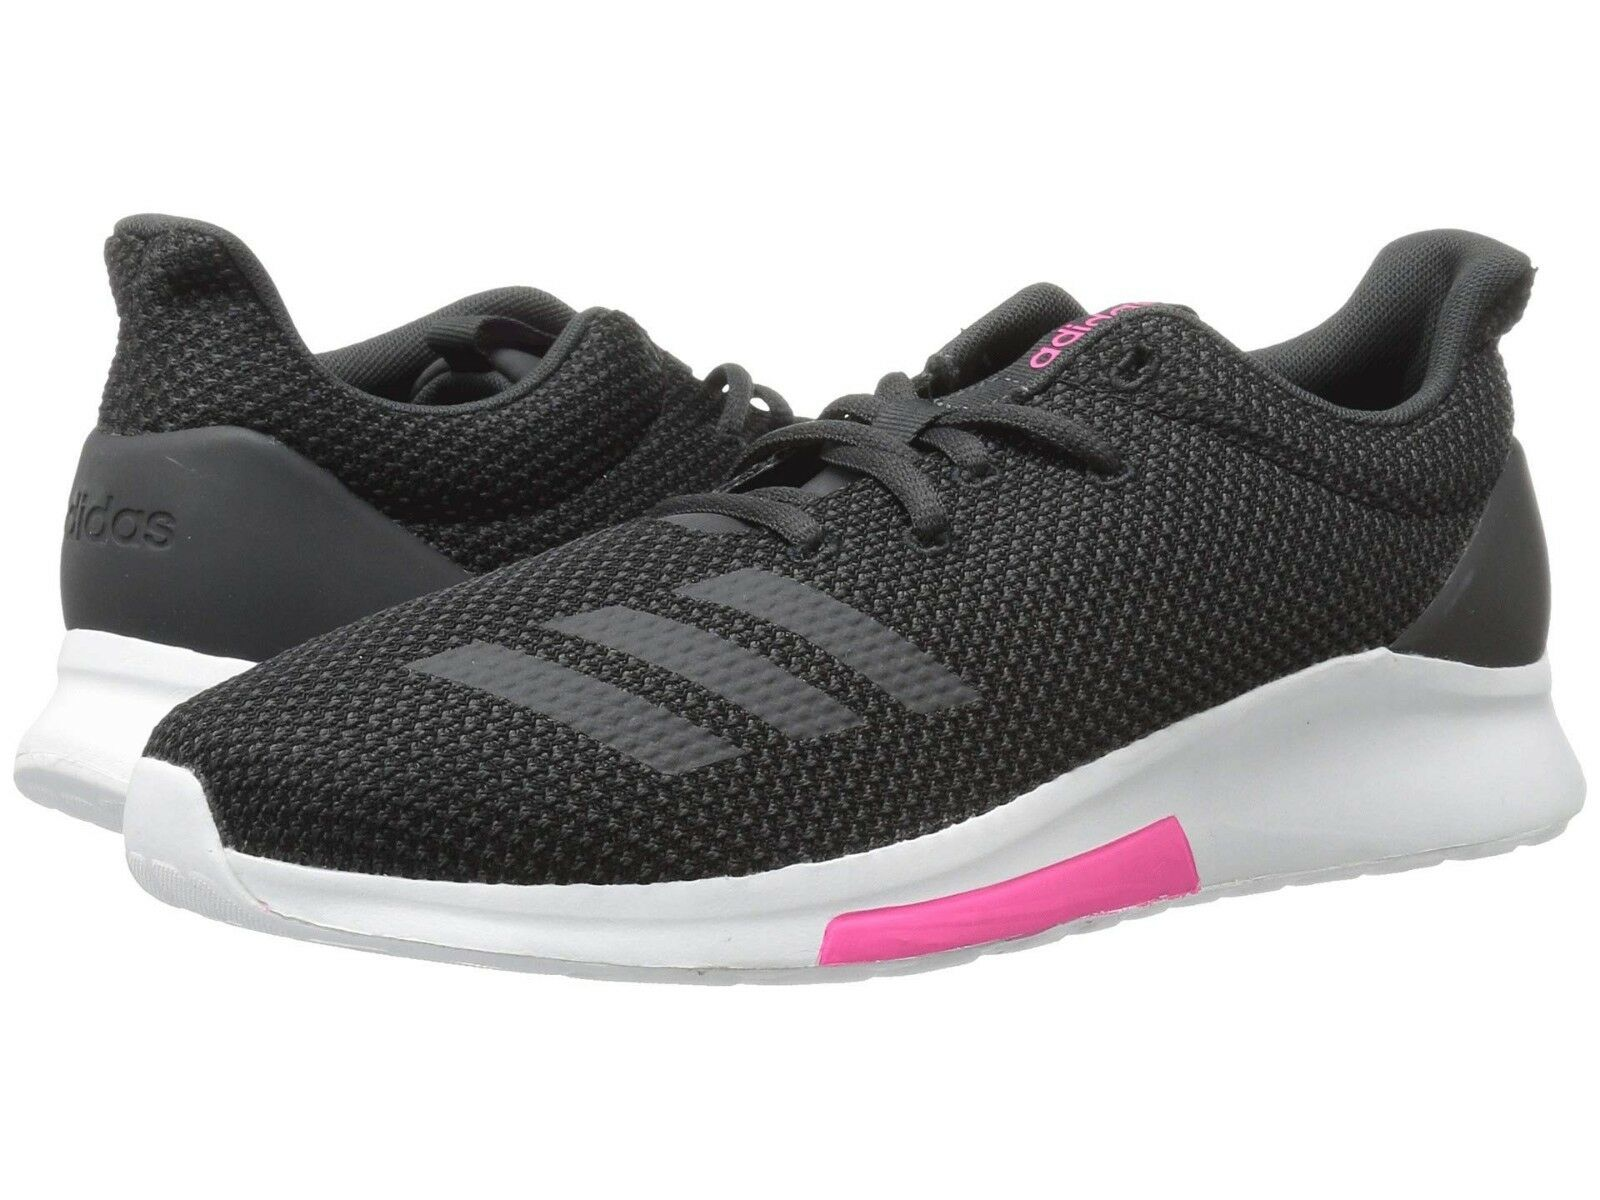 Women Adidas Puremotion Running Shoe B96549 Black/Carbon/Shock Pink Brand New